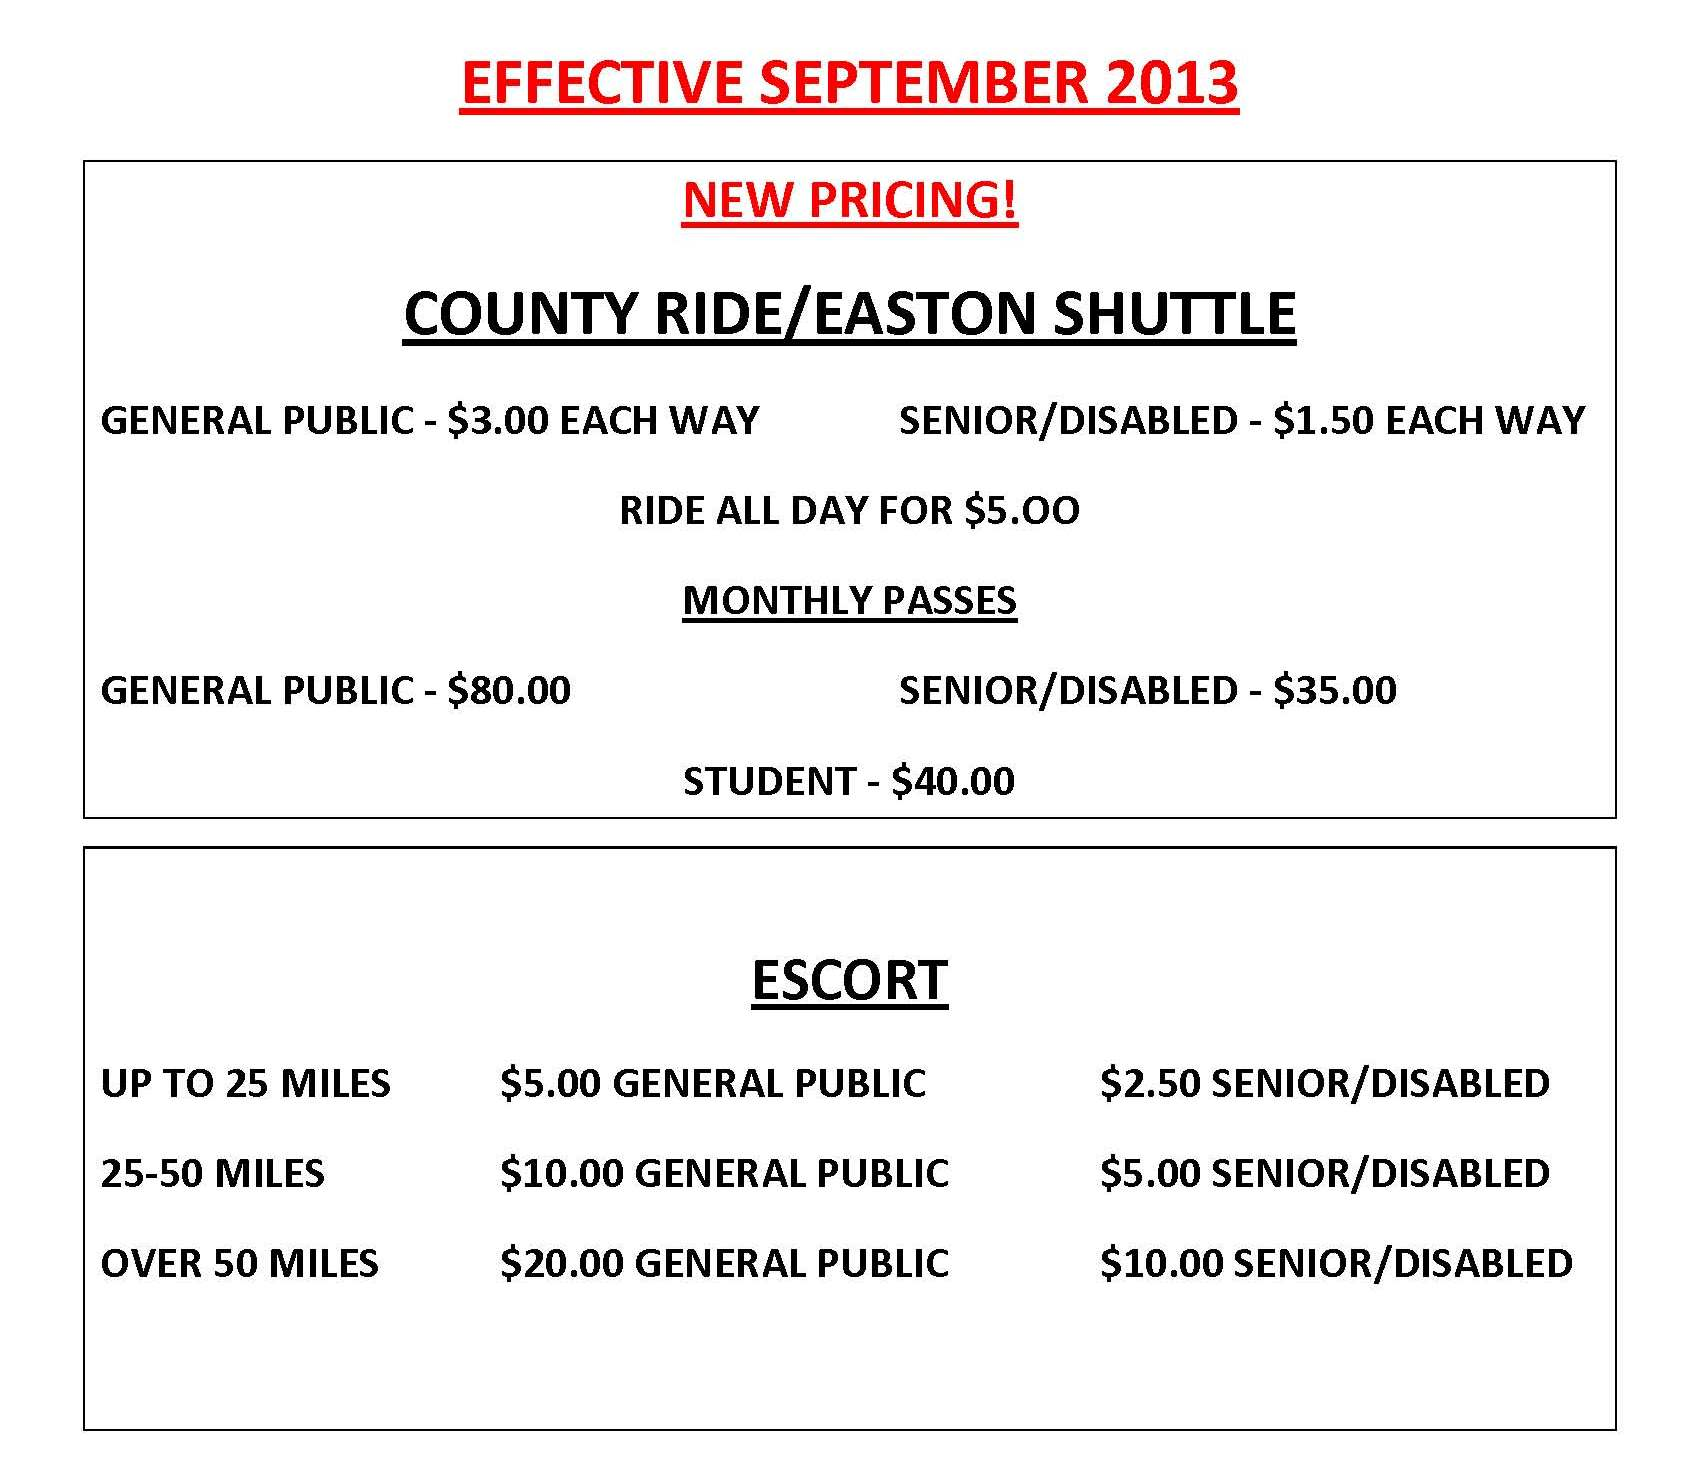 EFFECTIVE SEPTEMBER 2013 NEW PRICING